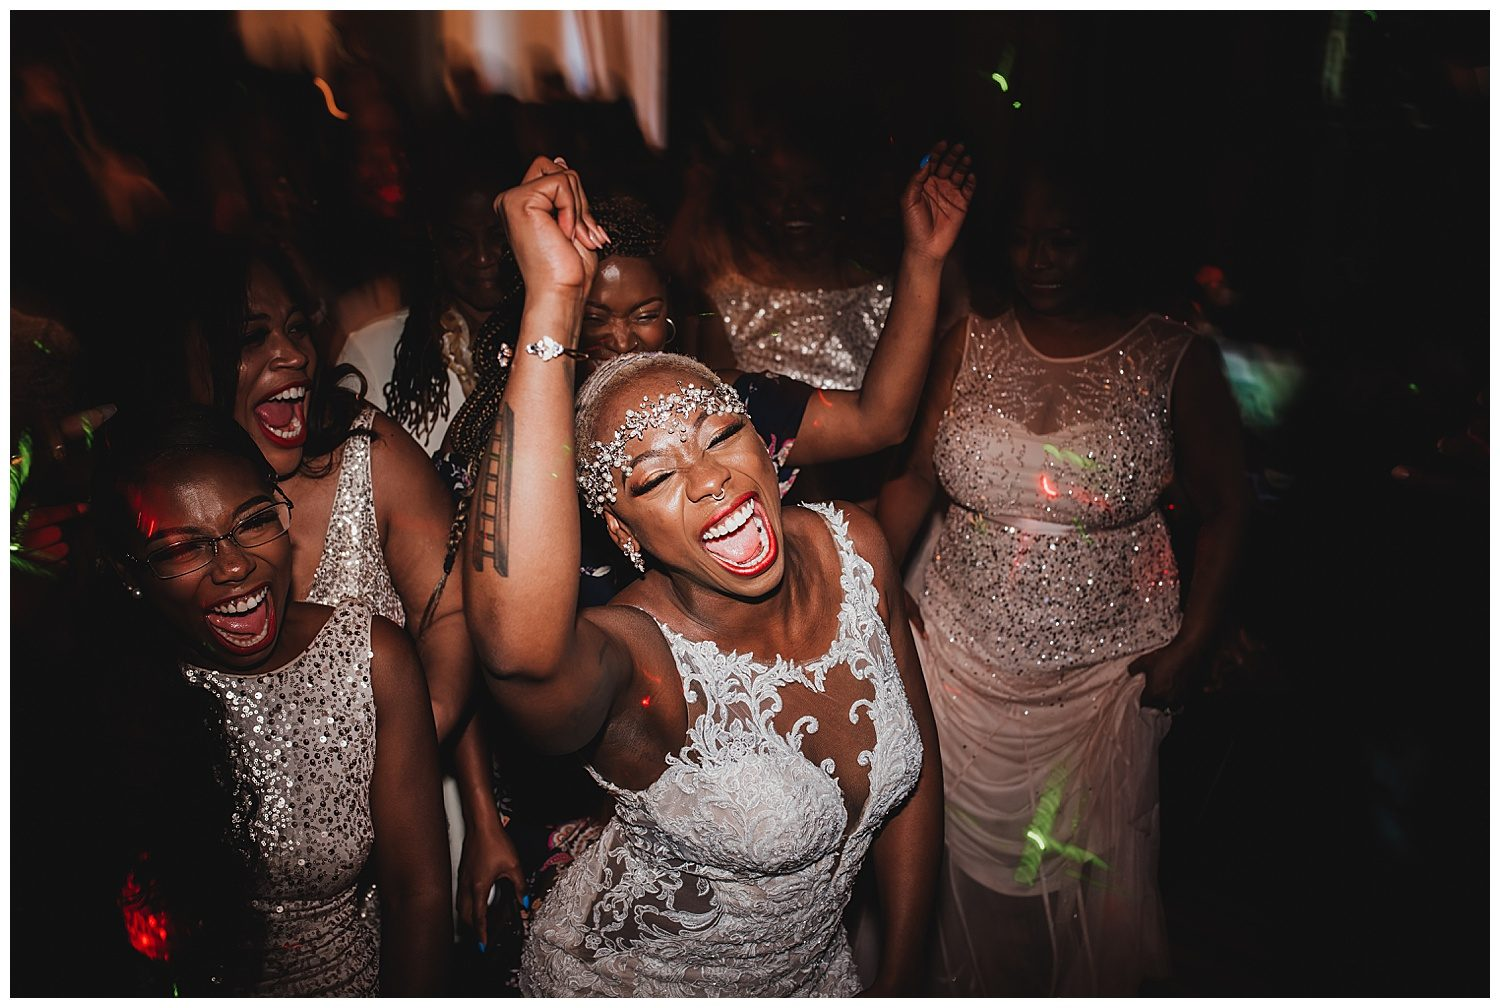 Keith House Chicago Wedding, The Adamkovi, bride dancing, wild party